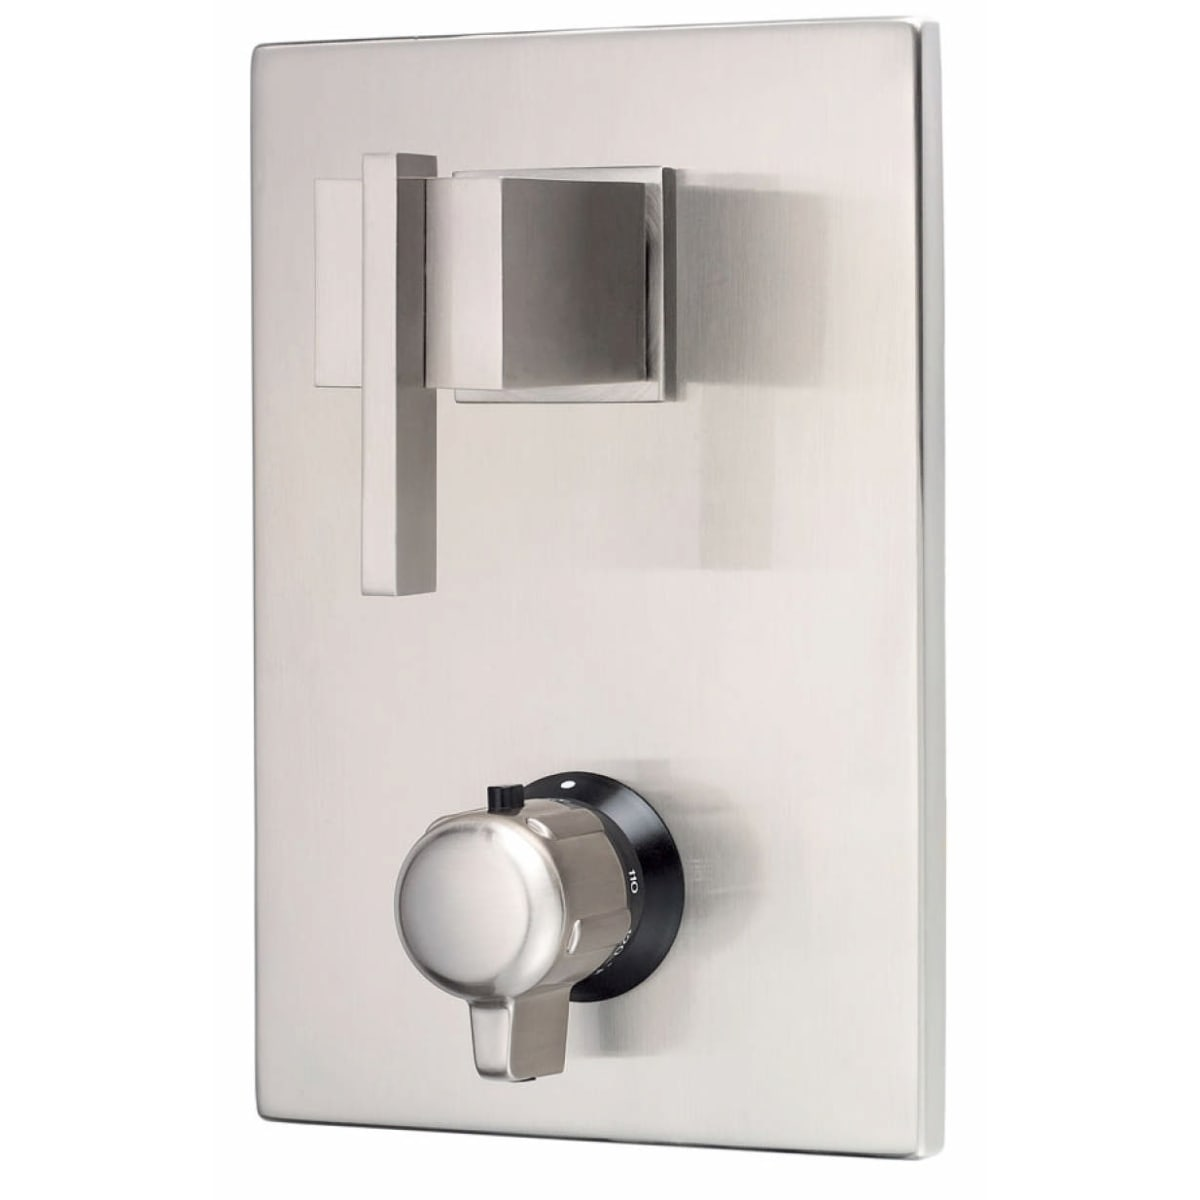 Danze D560144BN Brushed Nickel Thermostatic Valve Trim with Lever ...